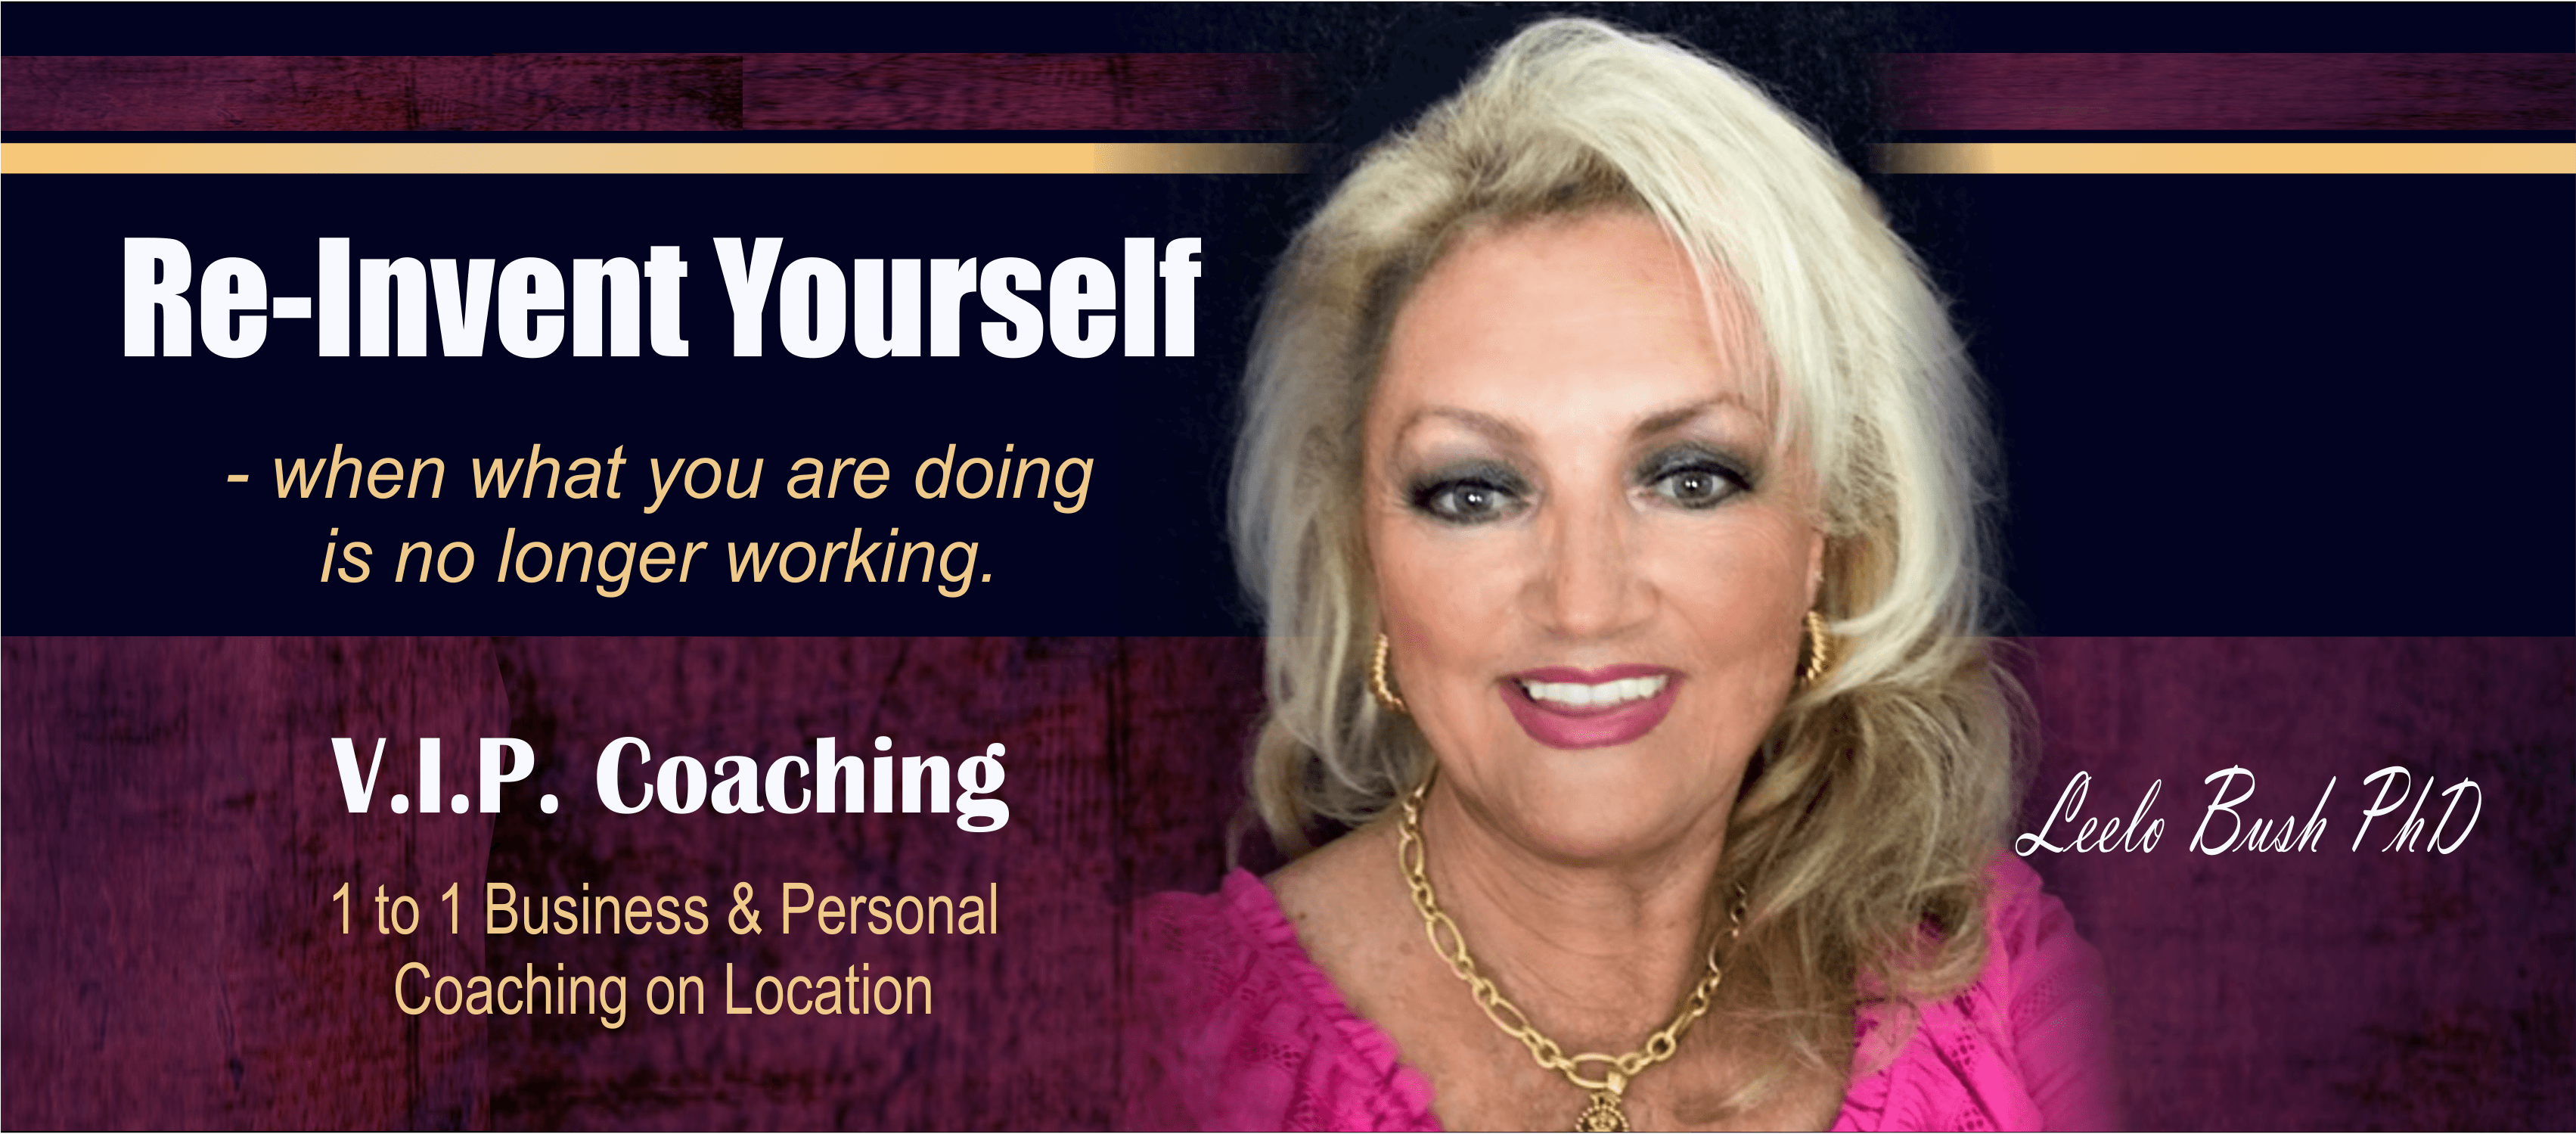 Reinvent Yourself with Leelo Bush PhD http://leelobush.com/vip/